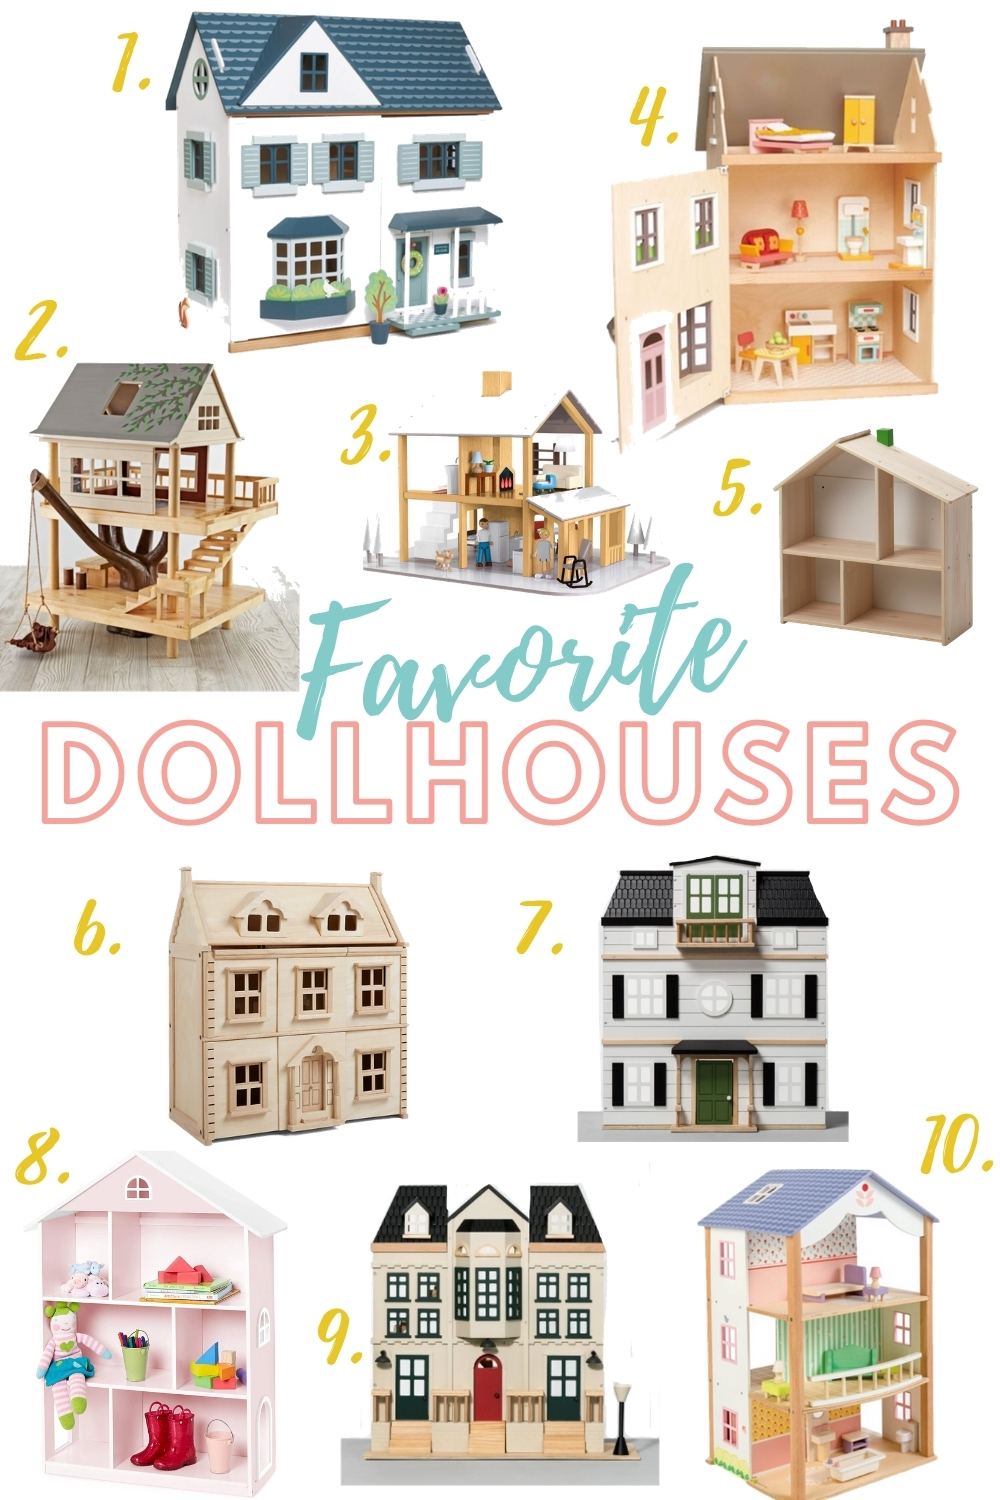 A collection of the best dollhouses! Perfect for Christmas lists or a DIY dollhouse! Check out these DIY tips for renovating your dollhouse